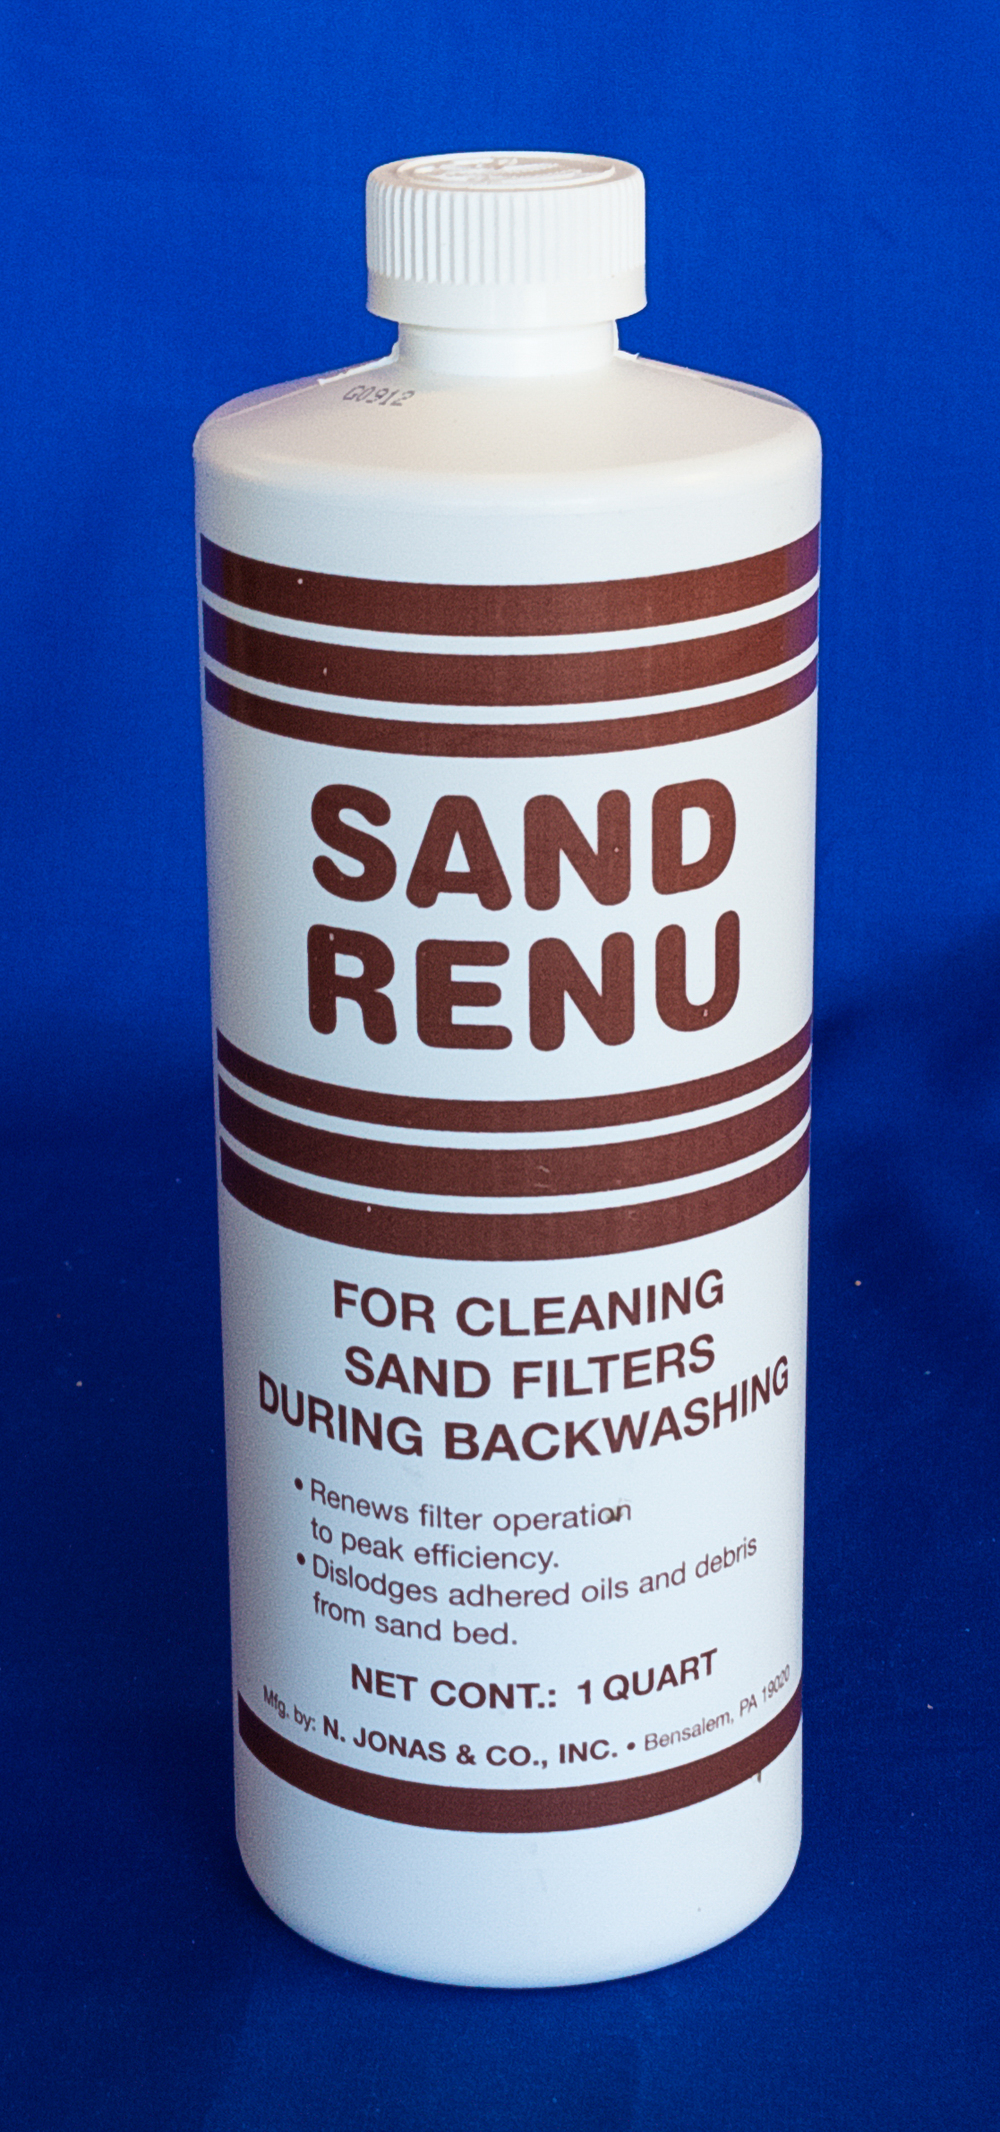 Removing the buildup of particulate matter can be achieved by applying Sand Renu (above) to the initial backwash cycle.